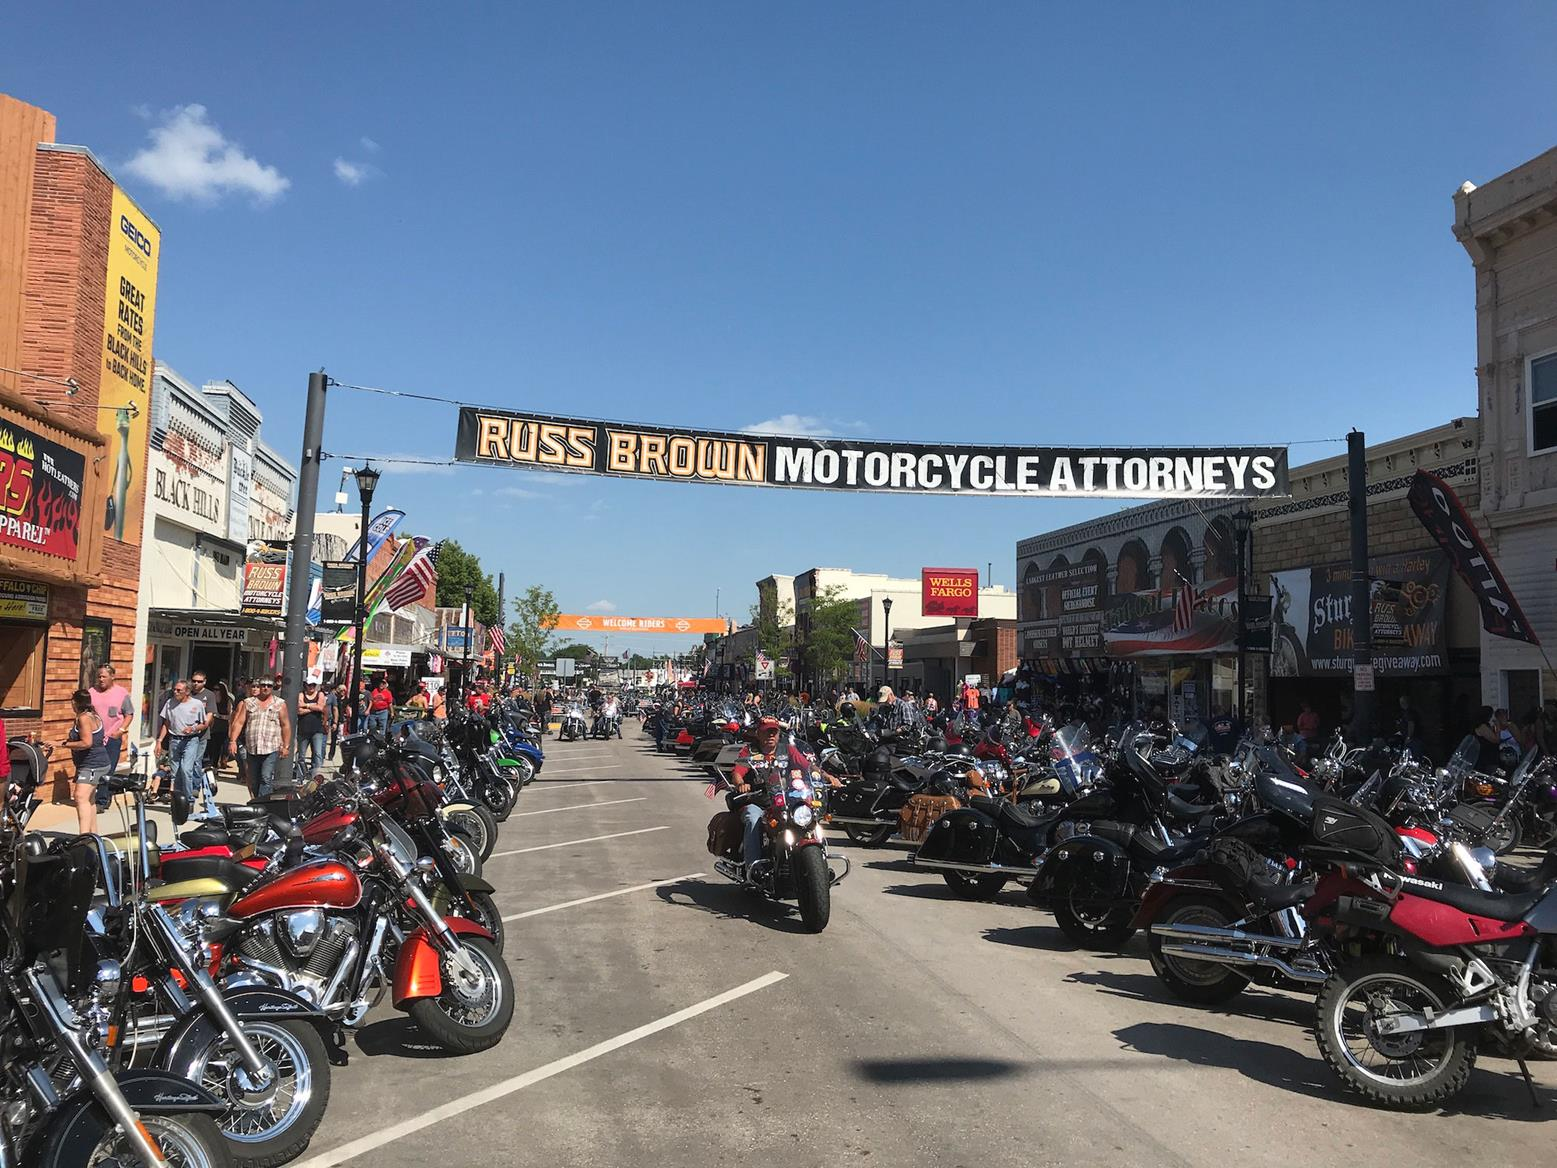 Sturgis Main Street is full of motorbikes for the annual Motorcycle Rally